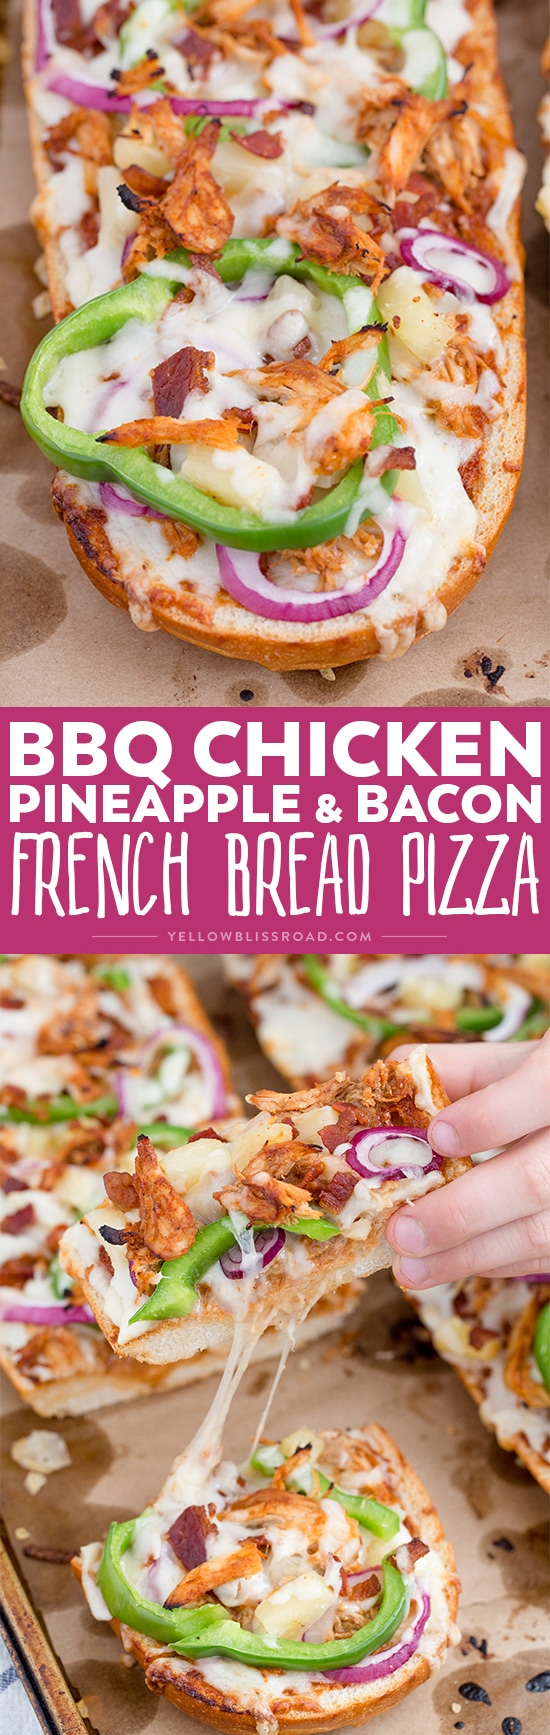 This Barbecue Chicken, Pineapple and Bacon French Bread Pizza is an easy weeknight meal that's full of flavor!